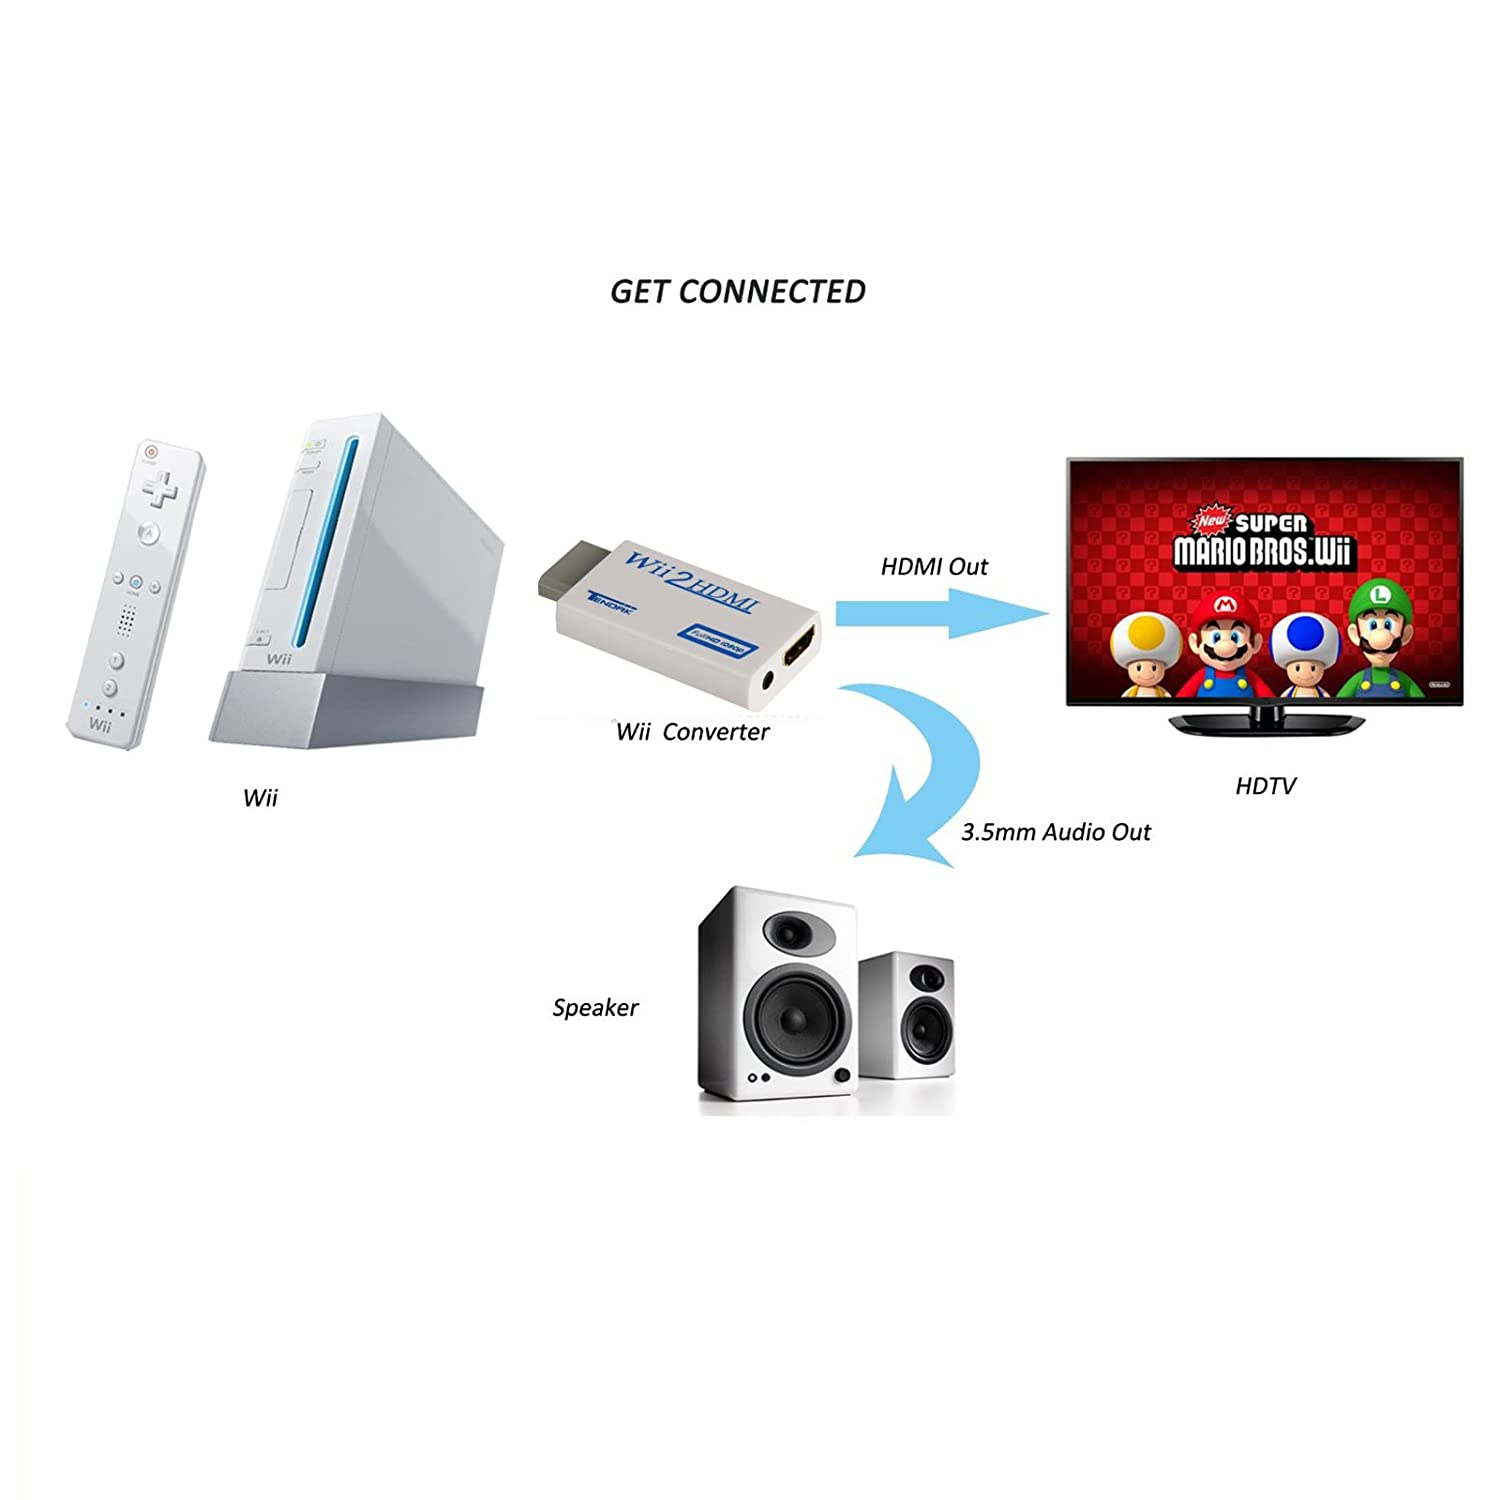 How do you connect your Nintendo Wii to an HDMI port?